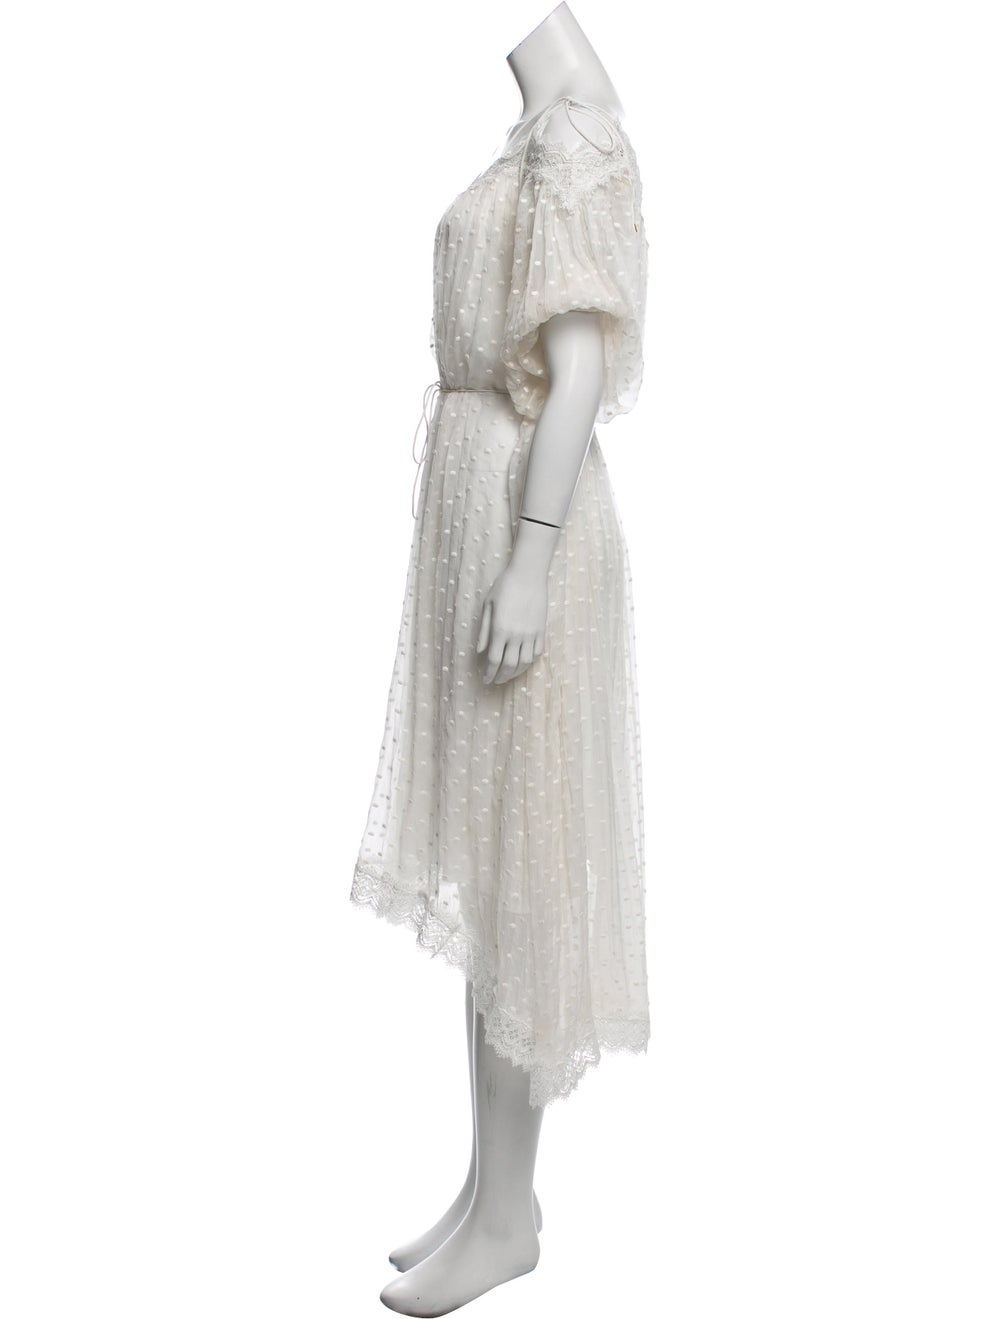 Zimmermann Silk Lace-Trimmed Dress - image 2